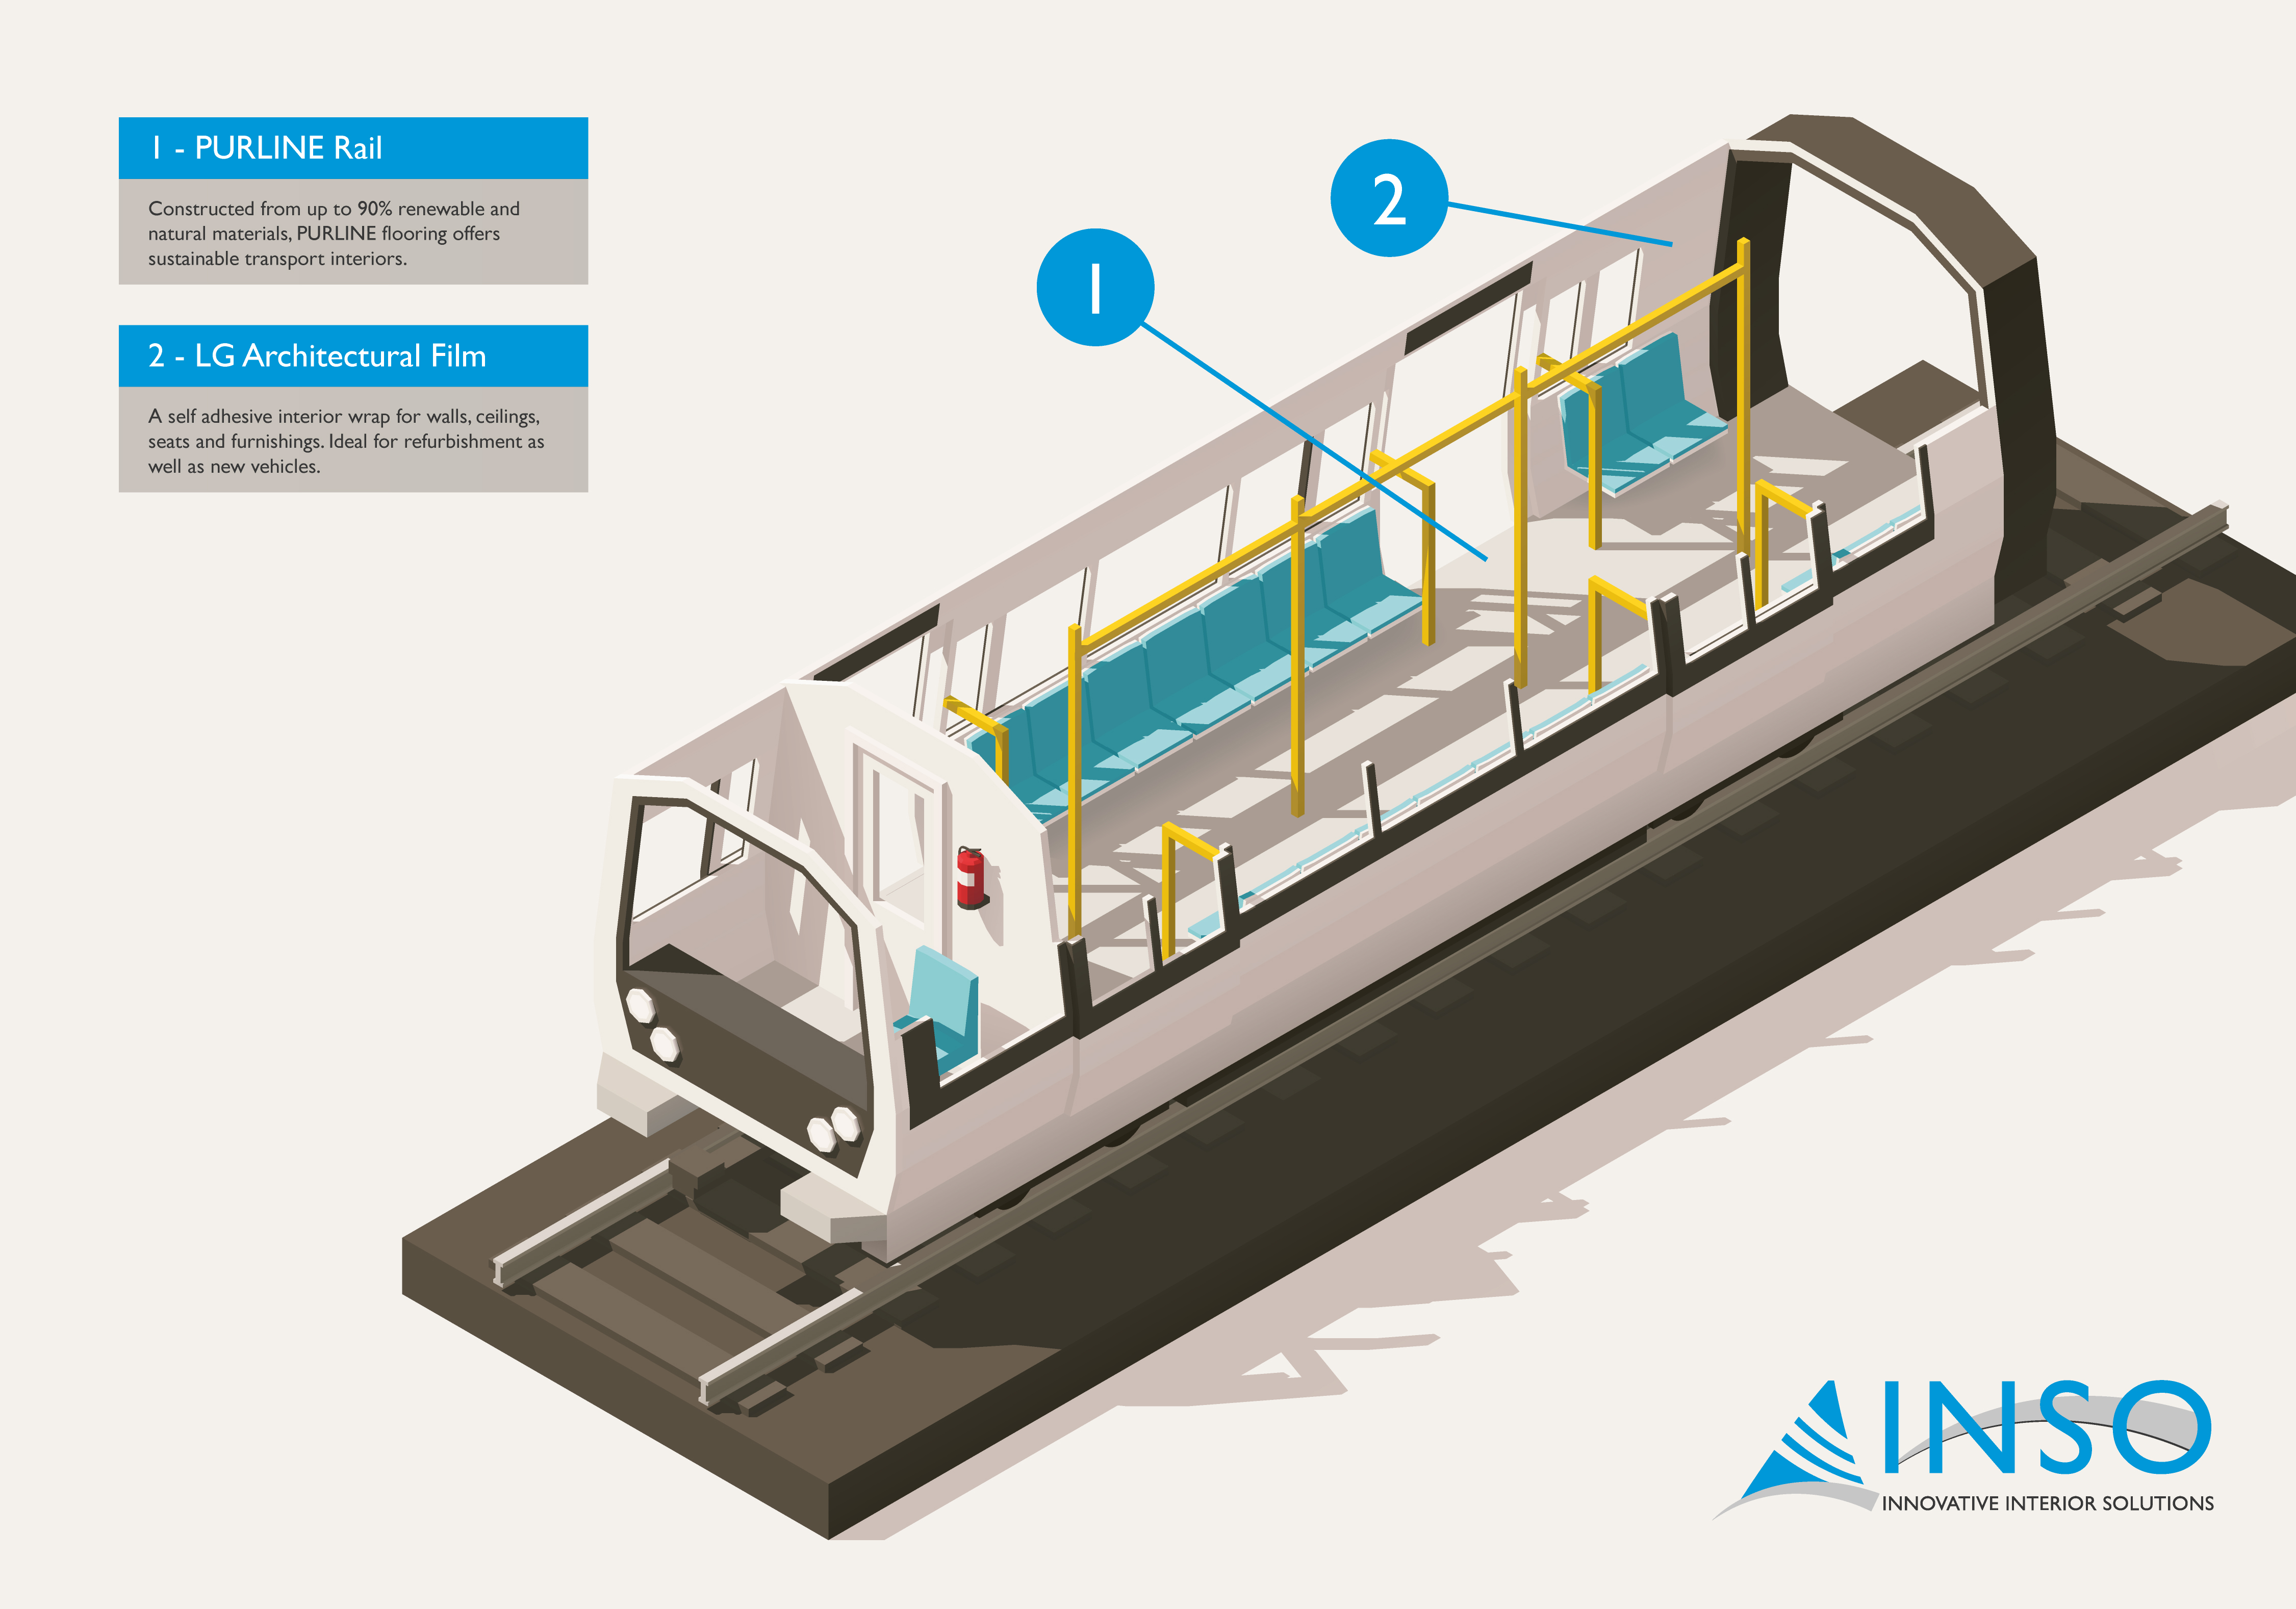 Diagram of PURLINE Rail and LG Architectural Film usage on railway carriage